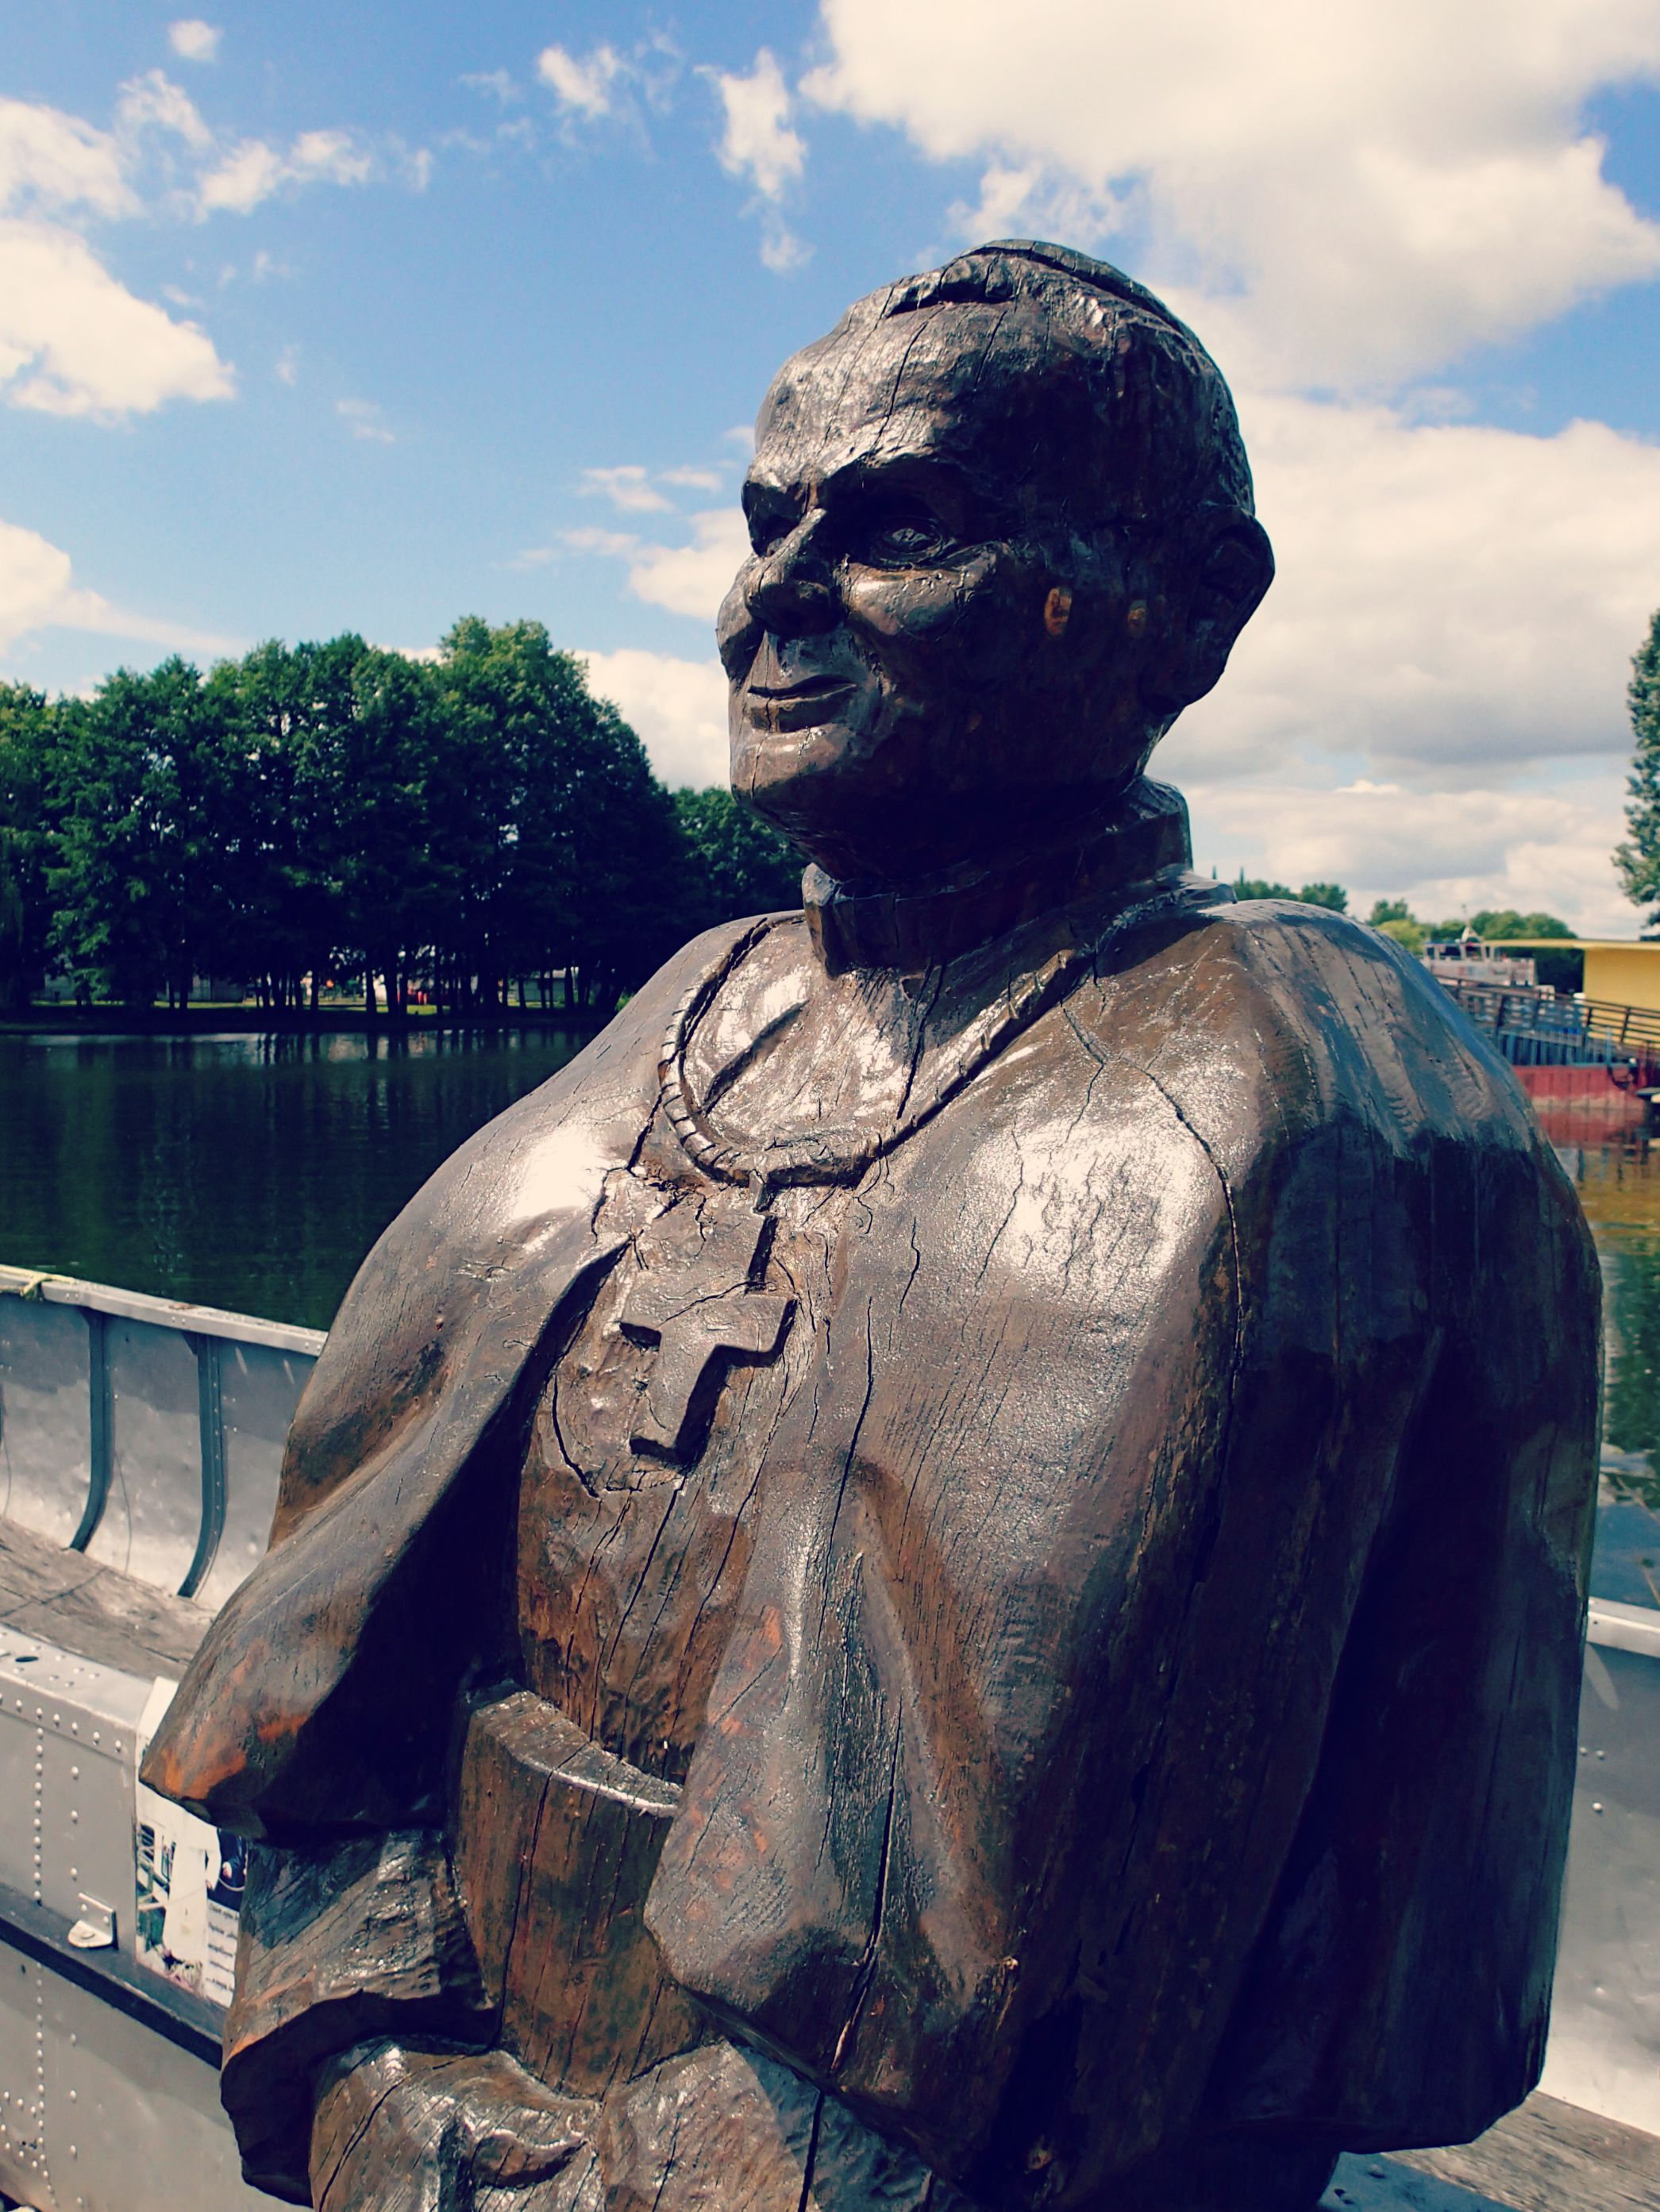 A statue erected of Pope John Paul II. A Polish native, his visit was hugely important to the Polish people and was a historical event as he was the first Roman Catholic pontiff to visit a (then) Communist-ruled country.  The boat touring company was quite proud to tell us that the Pope had taken one of their boats on a tour as well.